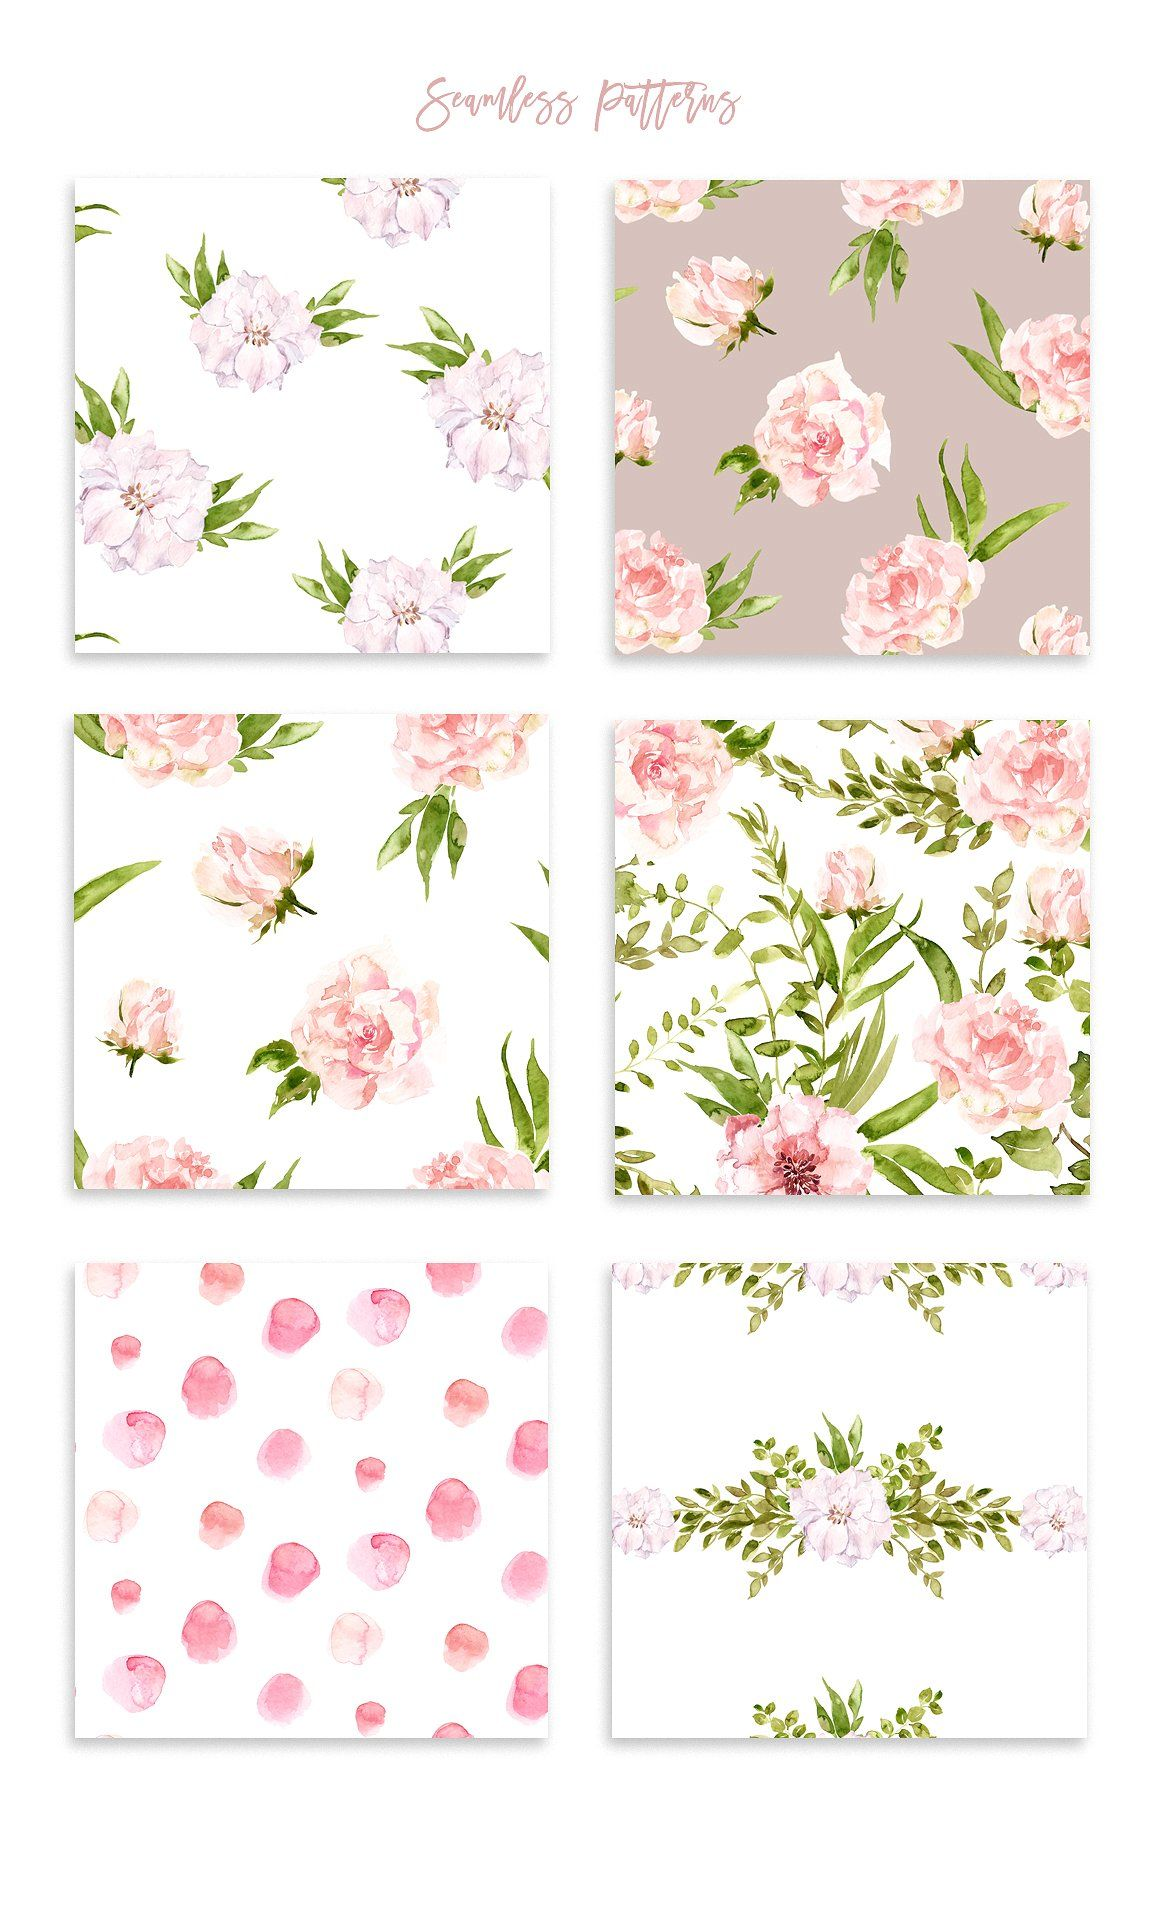 Floral Patterns Bundle Vol 2 By Spasibenko Art On Creativemarket